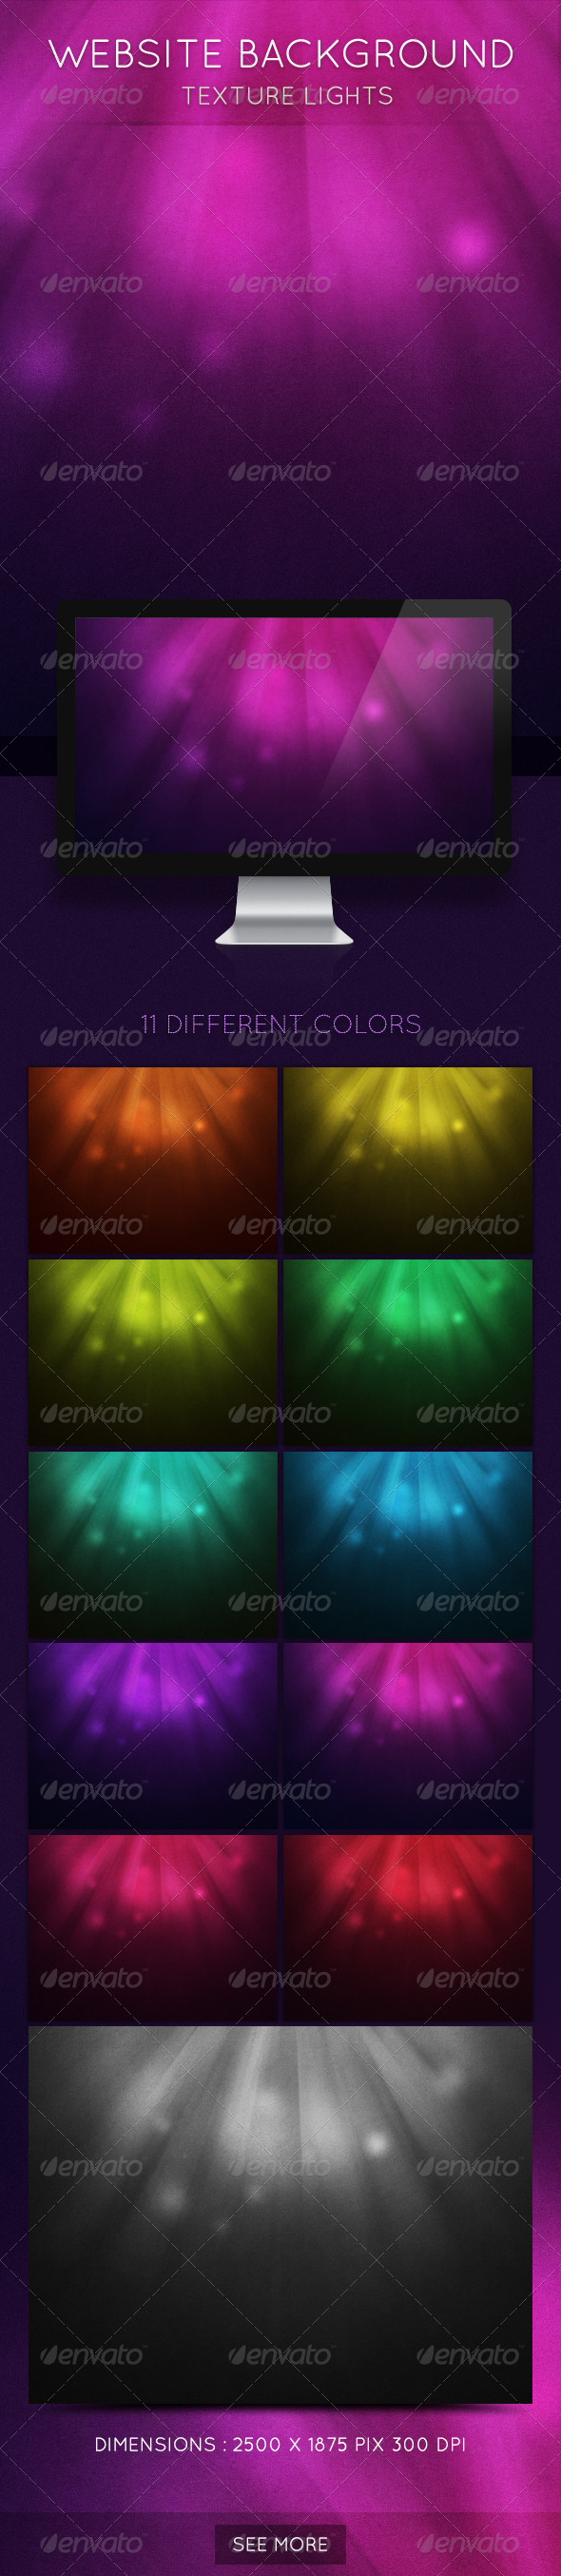 GraphicRiver Website Background Texture Lights 2864828